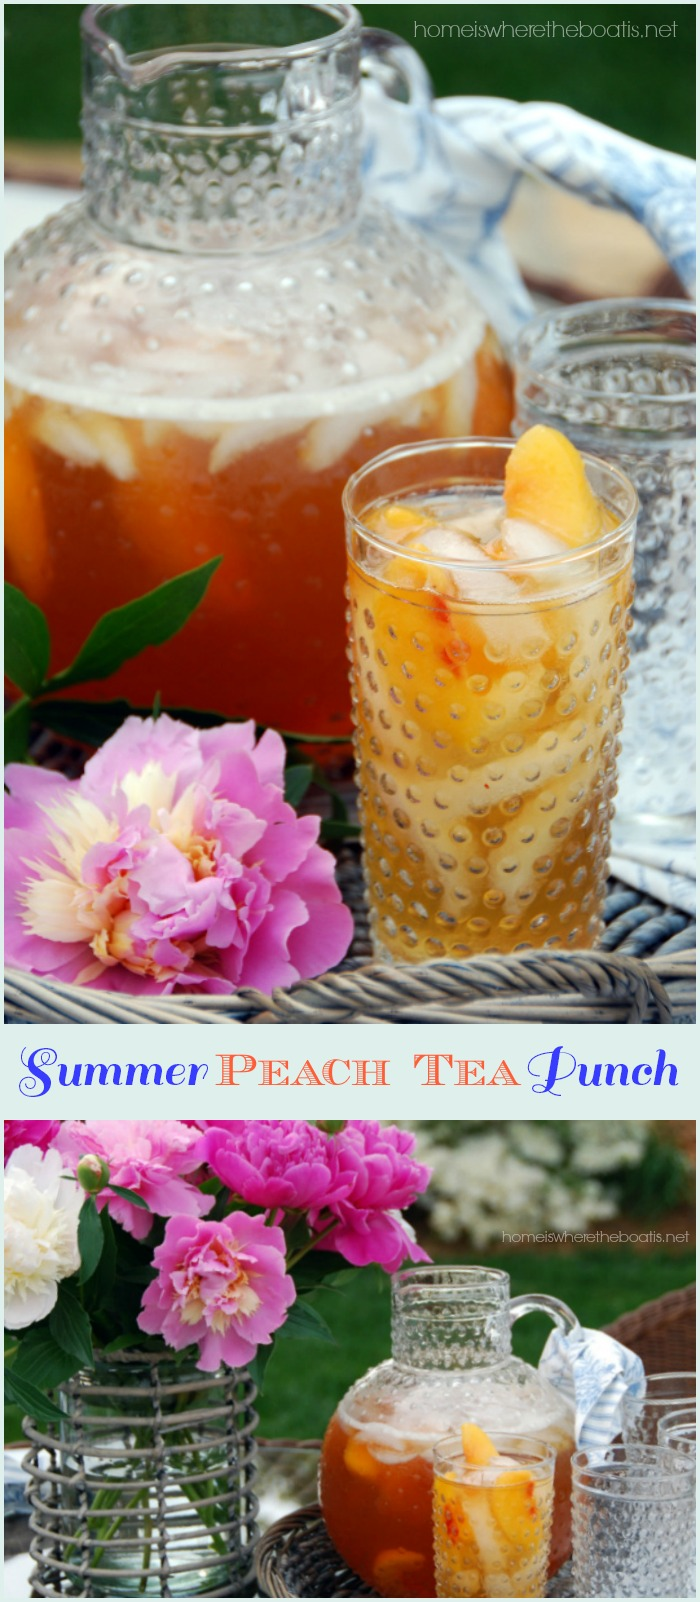 Summer Peach Iced Tea Punch